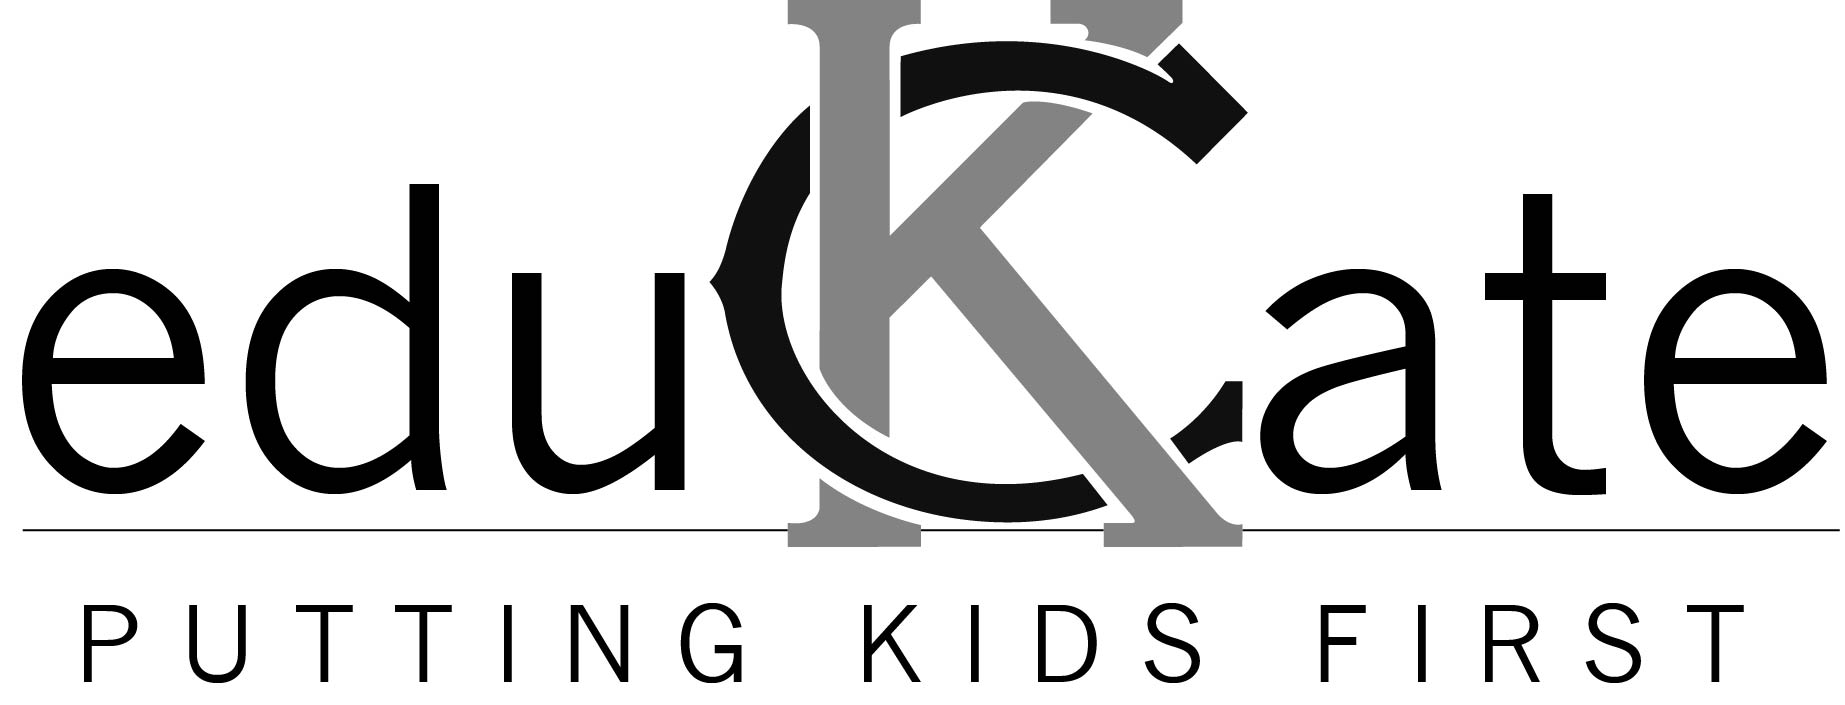 Educate KC logo new.jpg